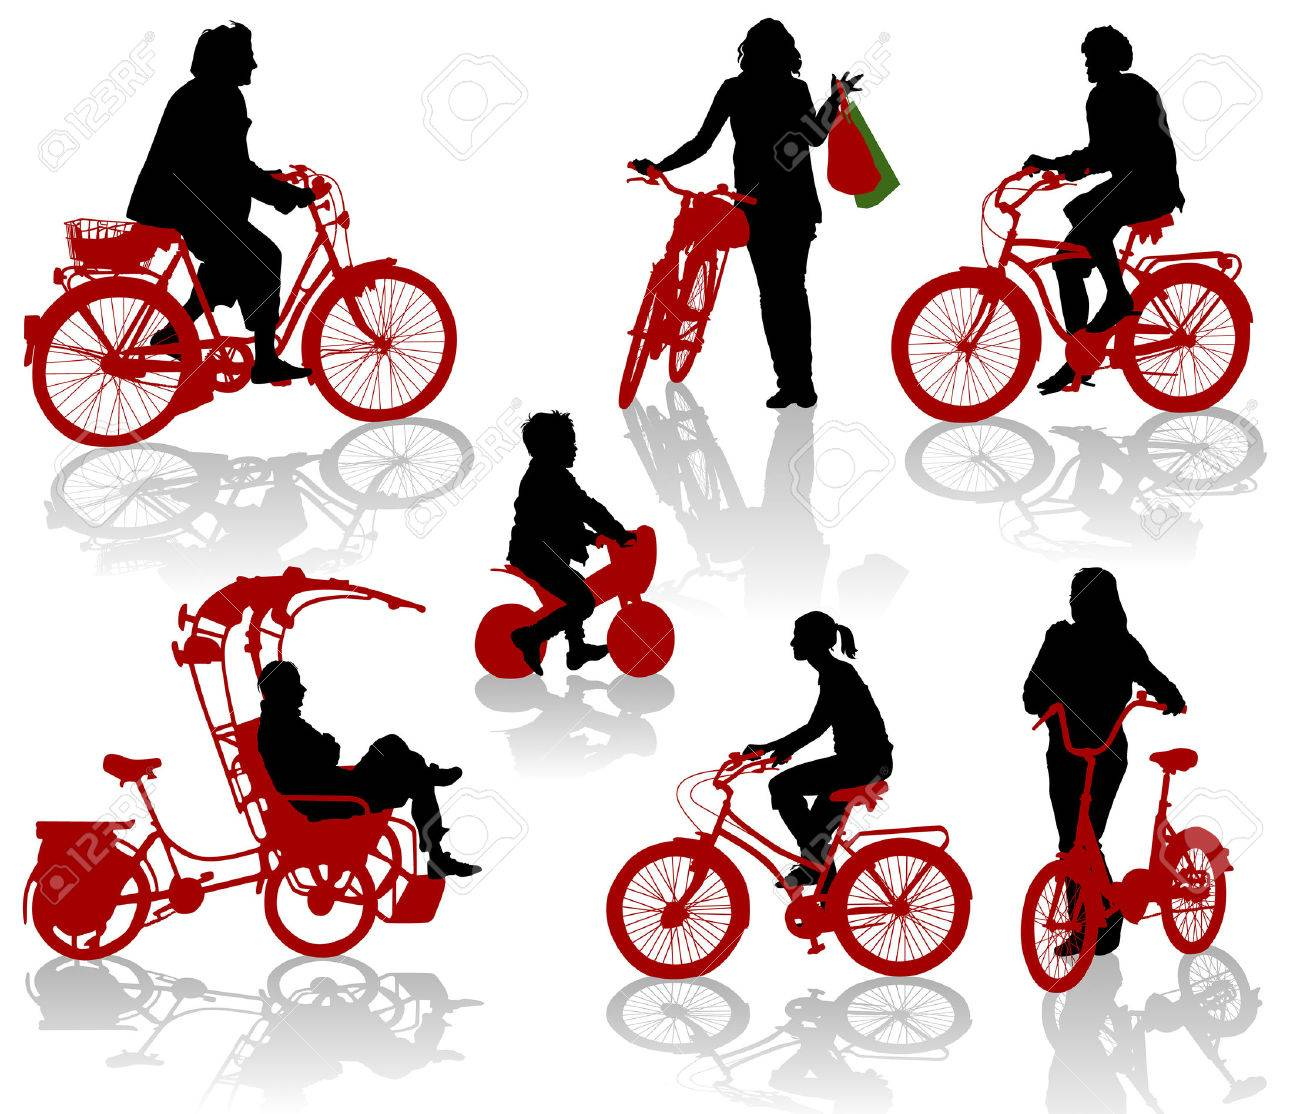 Silhouettes of people and children on bicycles Stock Vector - 9053849